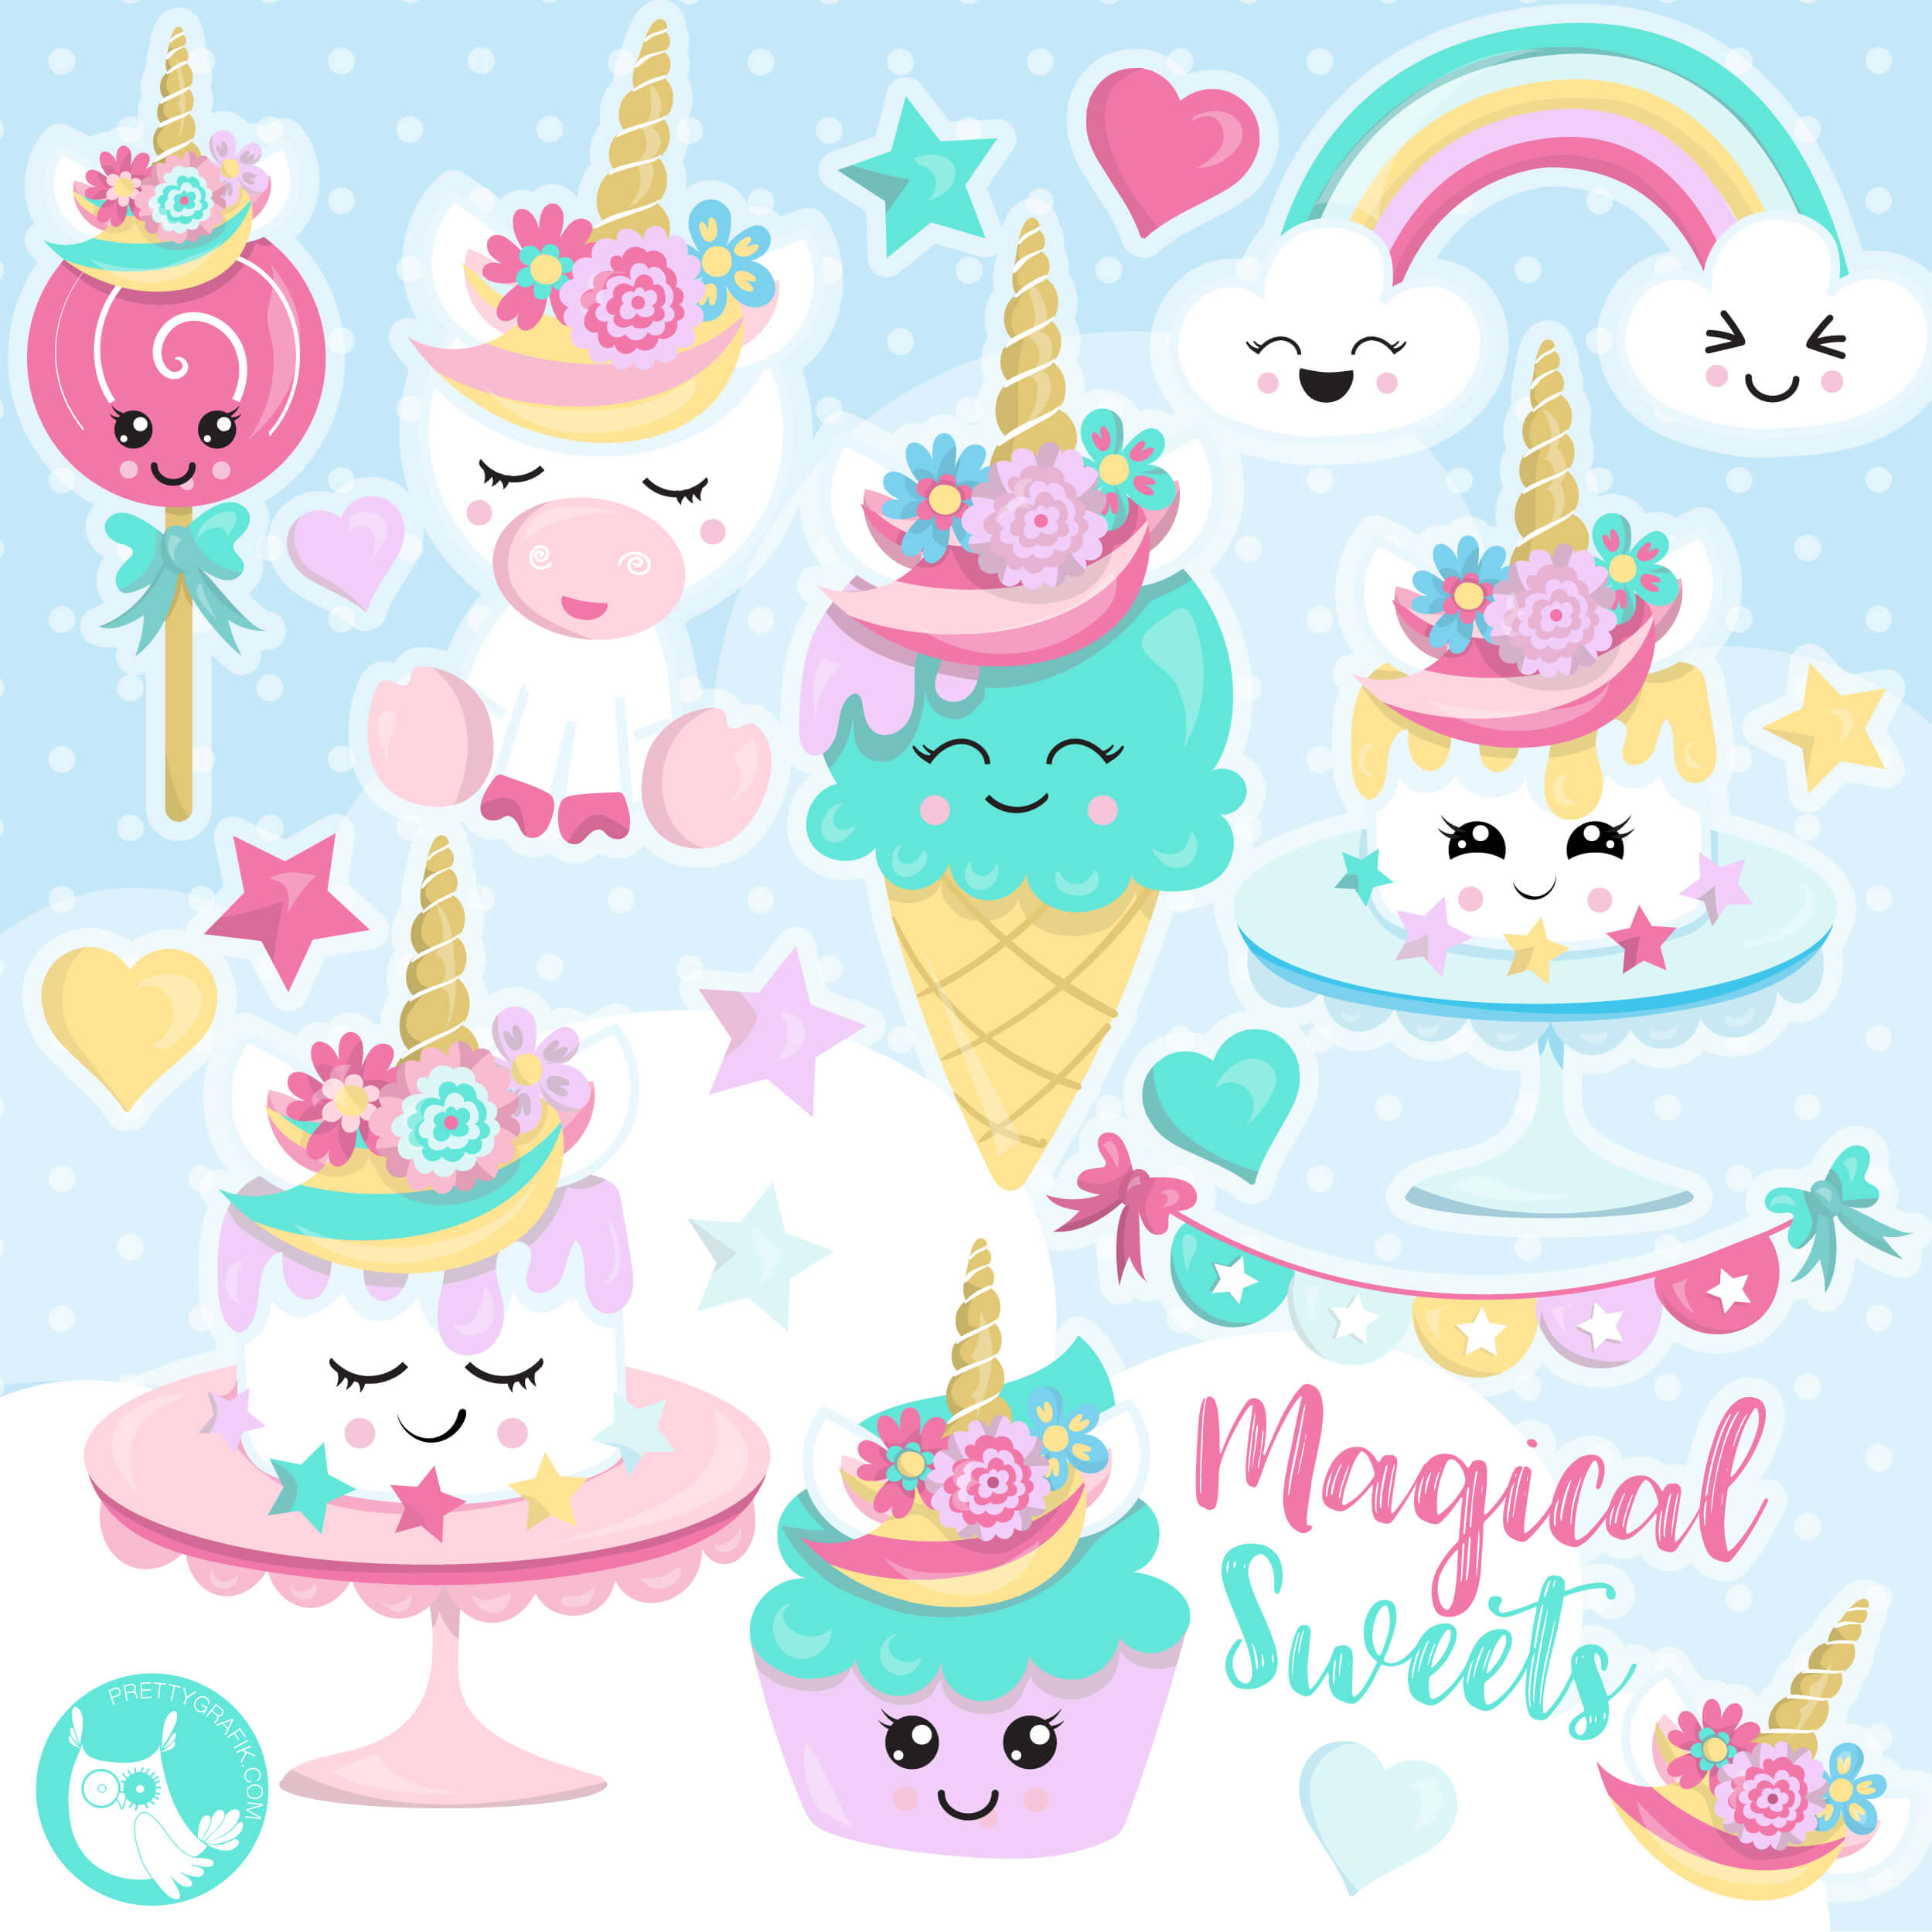 unicorn sweets clipart prettygrafik store rh prettygrafik com sweets clipart black and white sweet clip art images